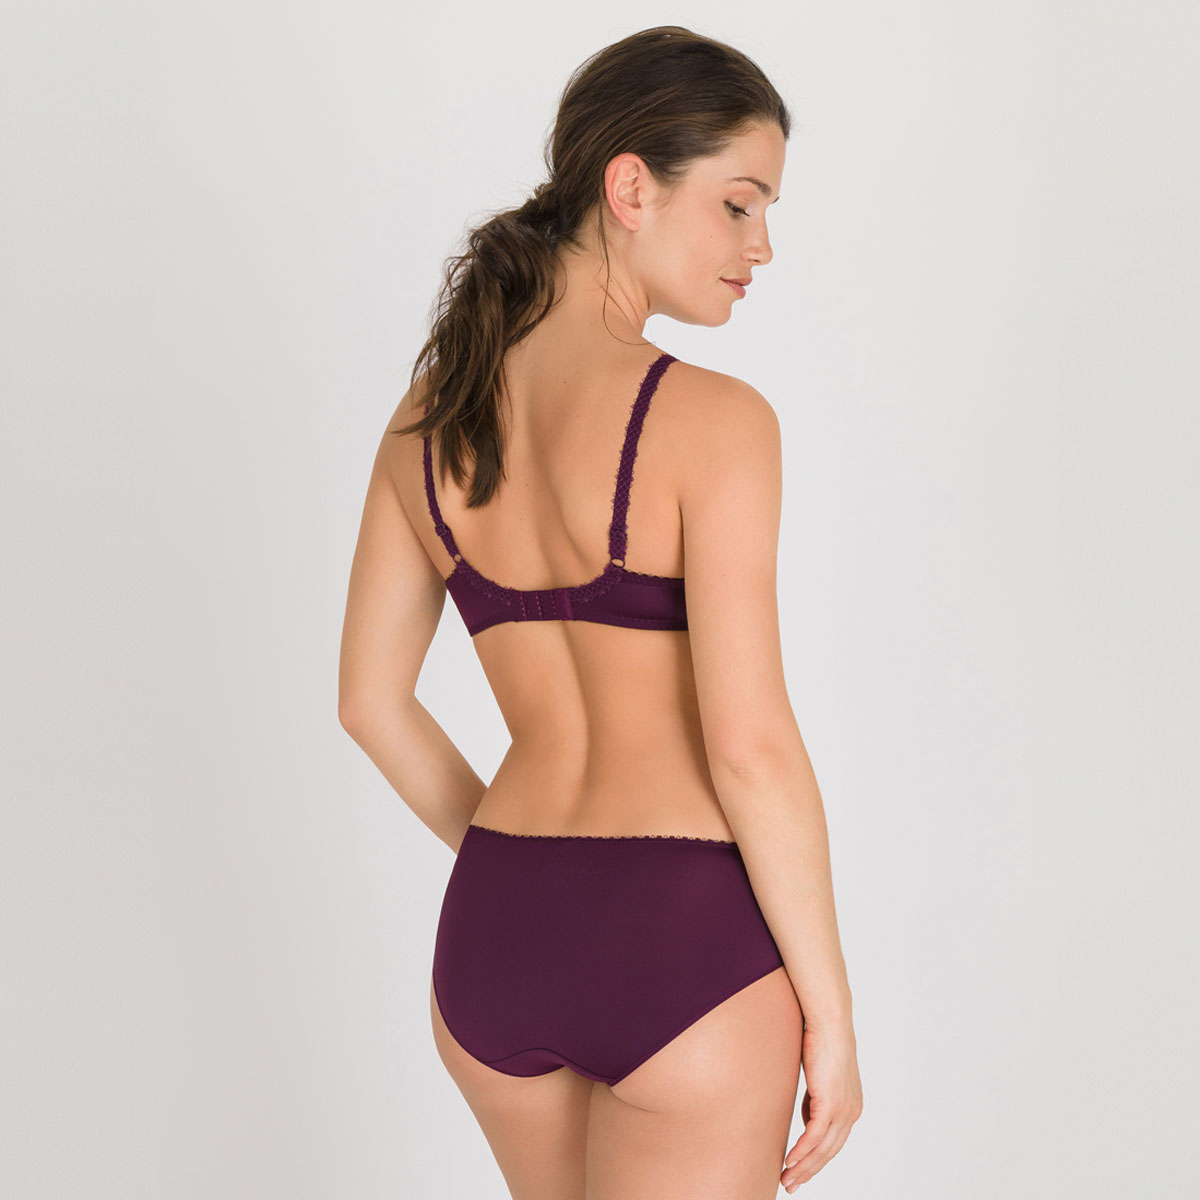 Full Cup Bra in Dark Purple - Flower Elegance-PLAYTEX